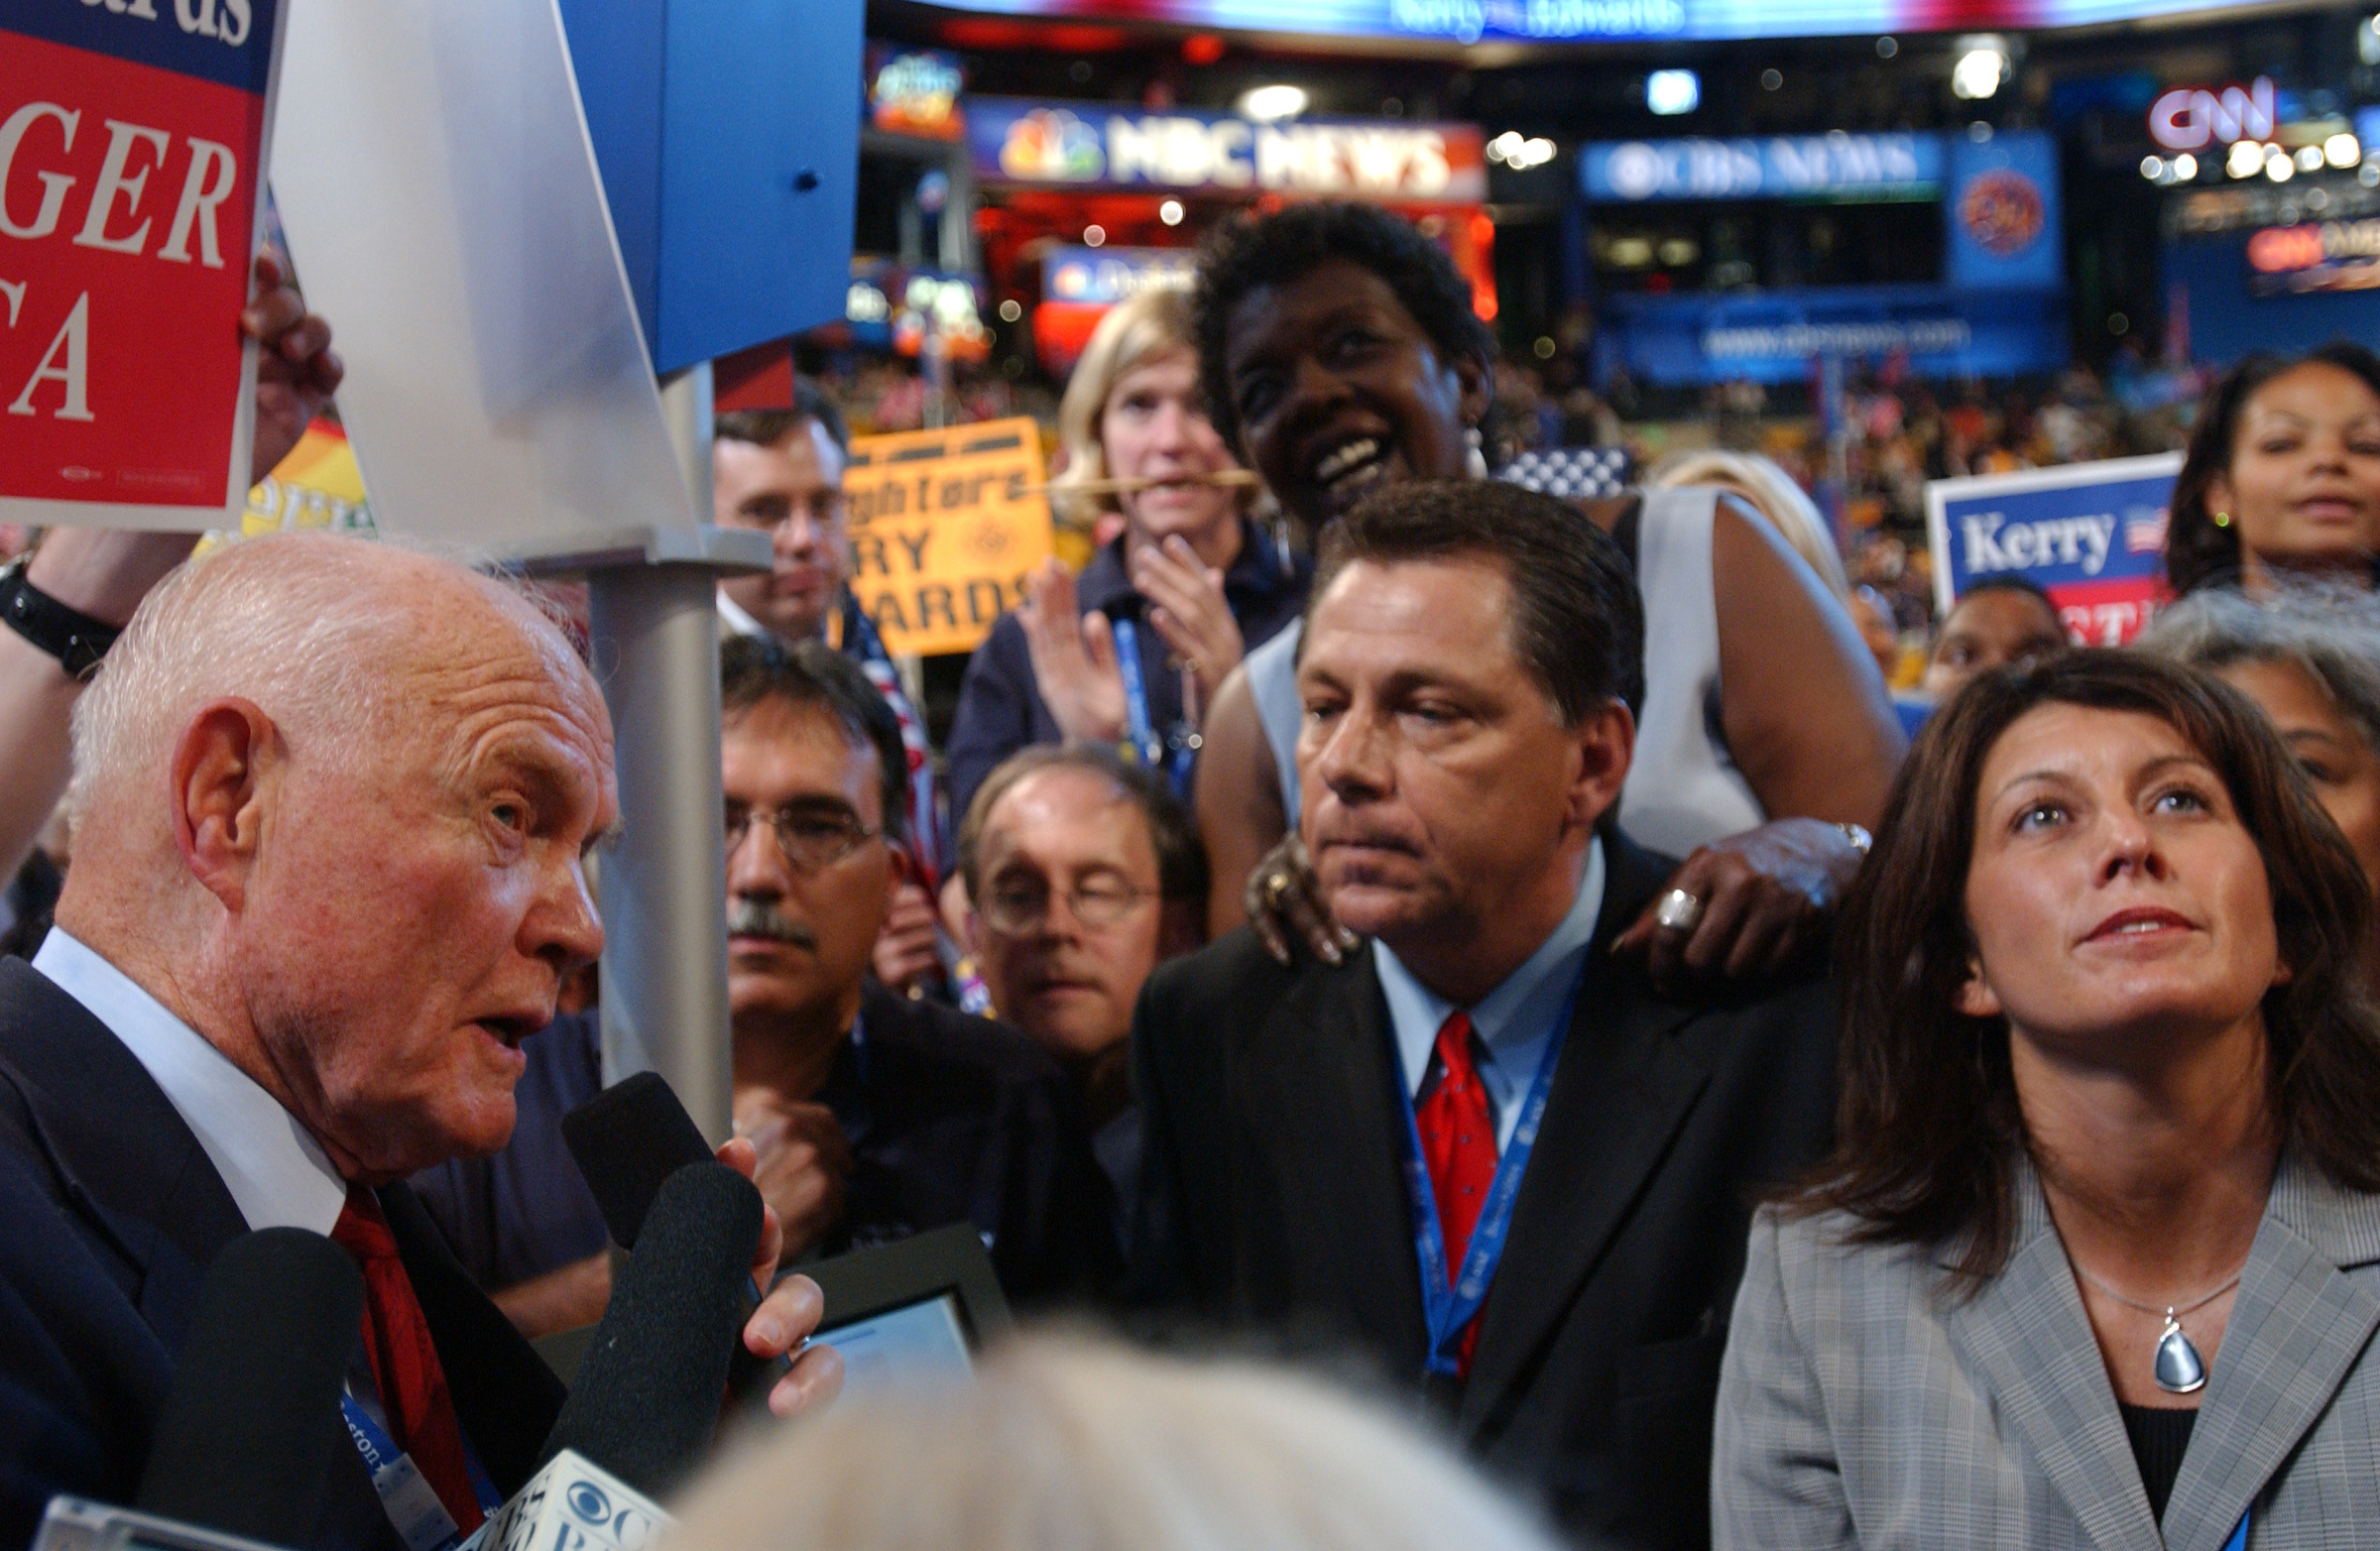 July 25, 2004: Sen. John Glenn, far left, U.S. Rep. Stephanie Tubbs Jones, D-Ohio, background middle, Ohio Democratic Party Chair Dennis L. White, in red tie, and wife Mary White, announce their state's votes during the roll call at the Democratic National Convention. (Photo by Scott J. Ferrell/CQ Roll Call)